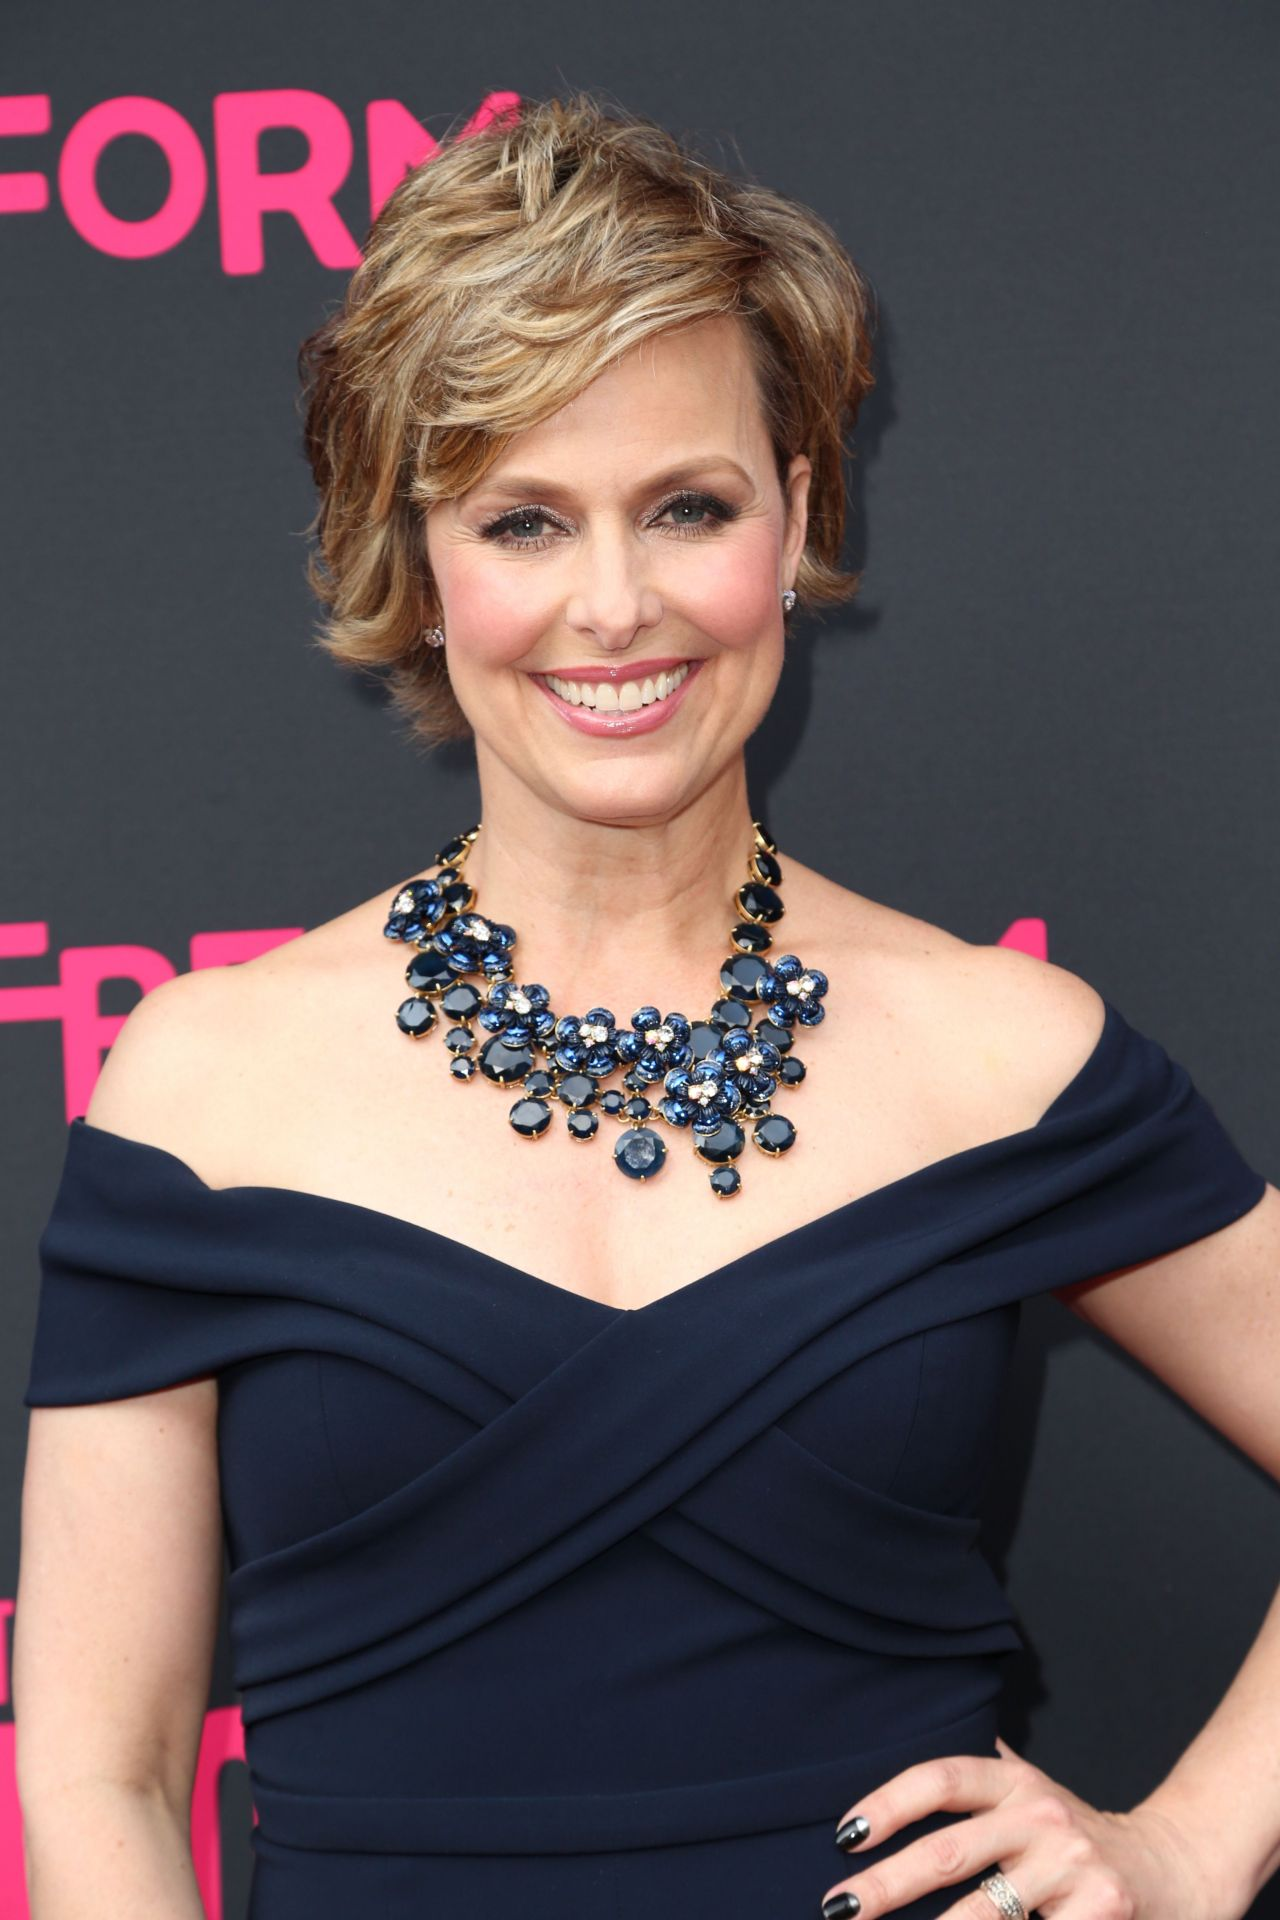 Melora Hardin Latest Photos Celebmafia